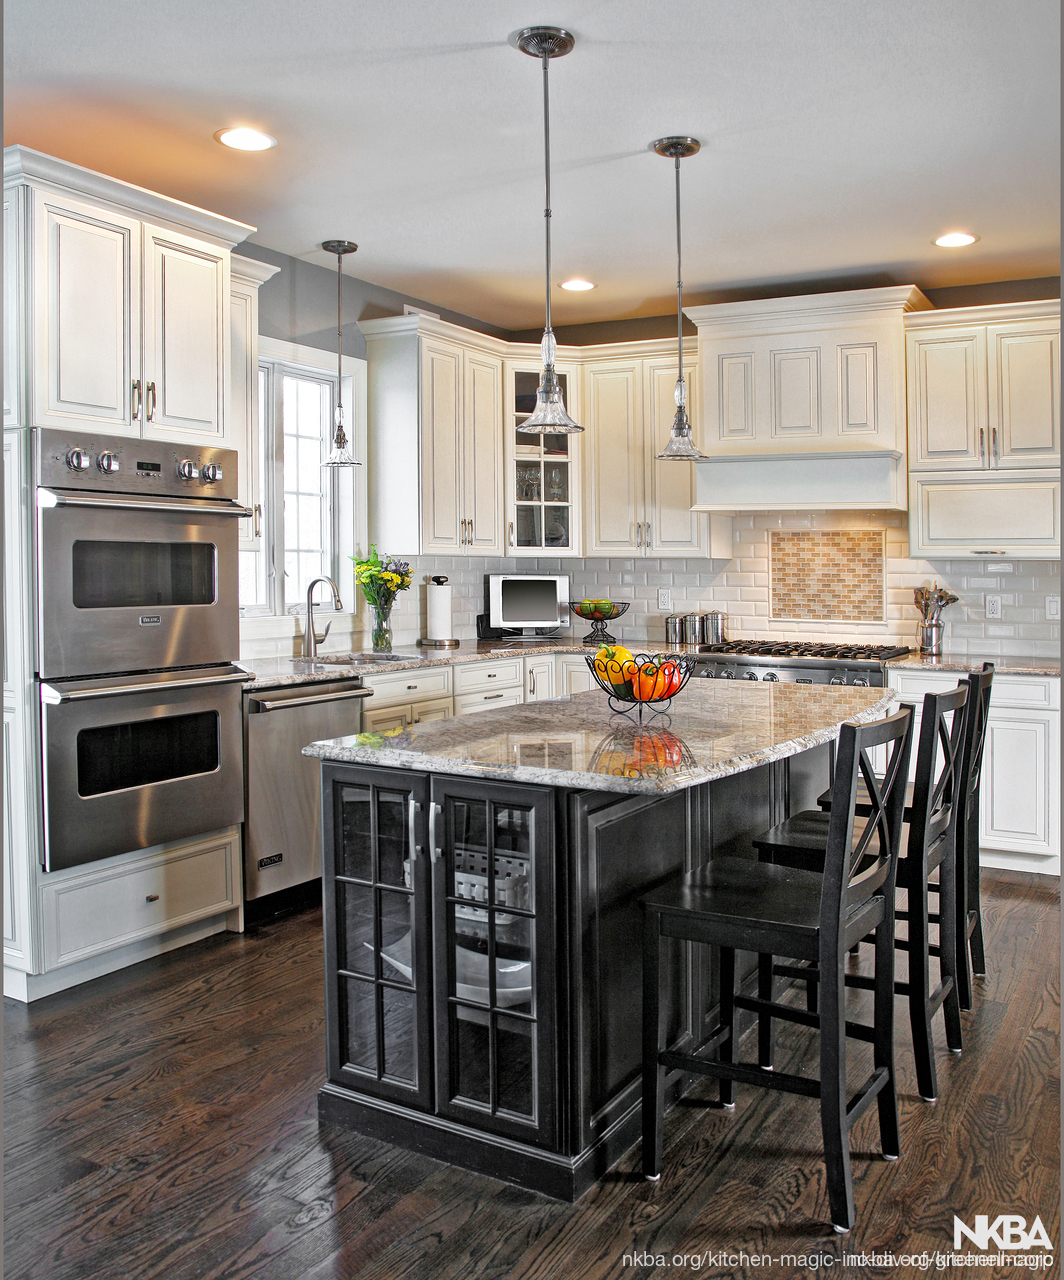 Ebony Black Island Surrounds By Antique White Cabinets Nkba